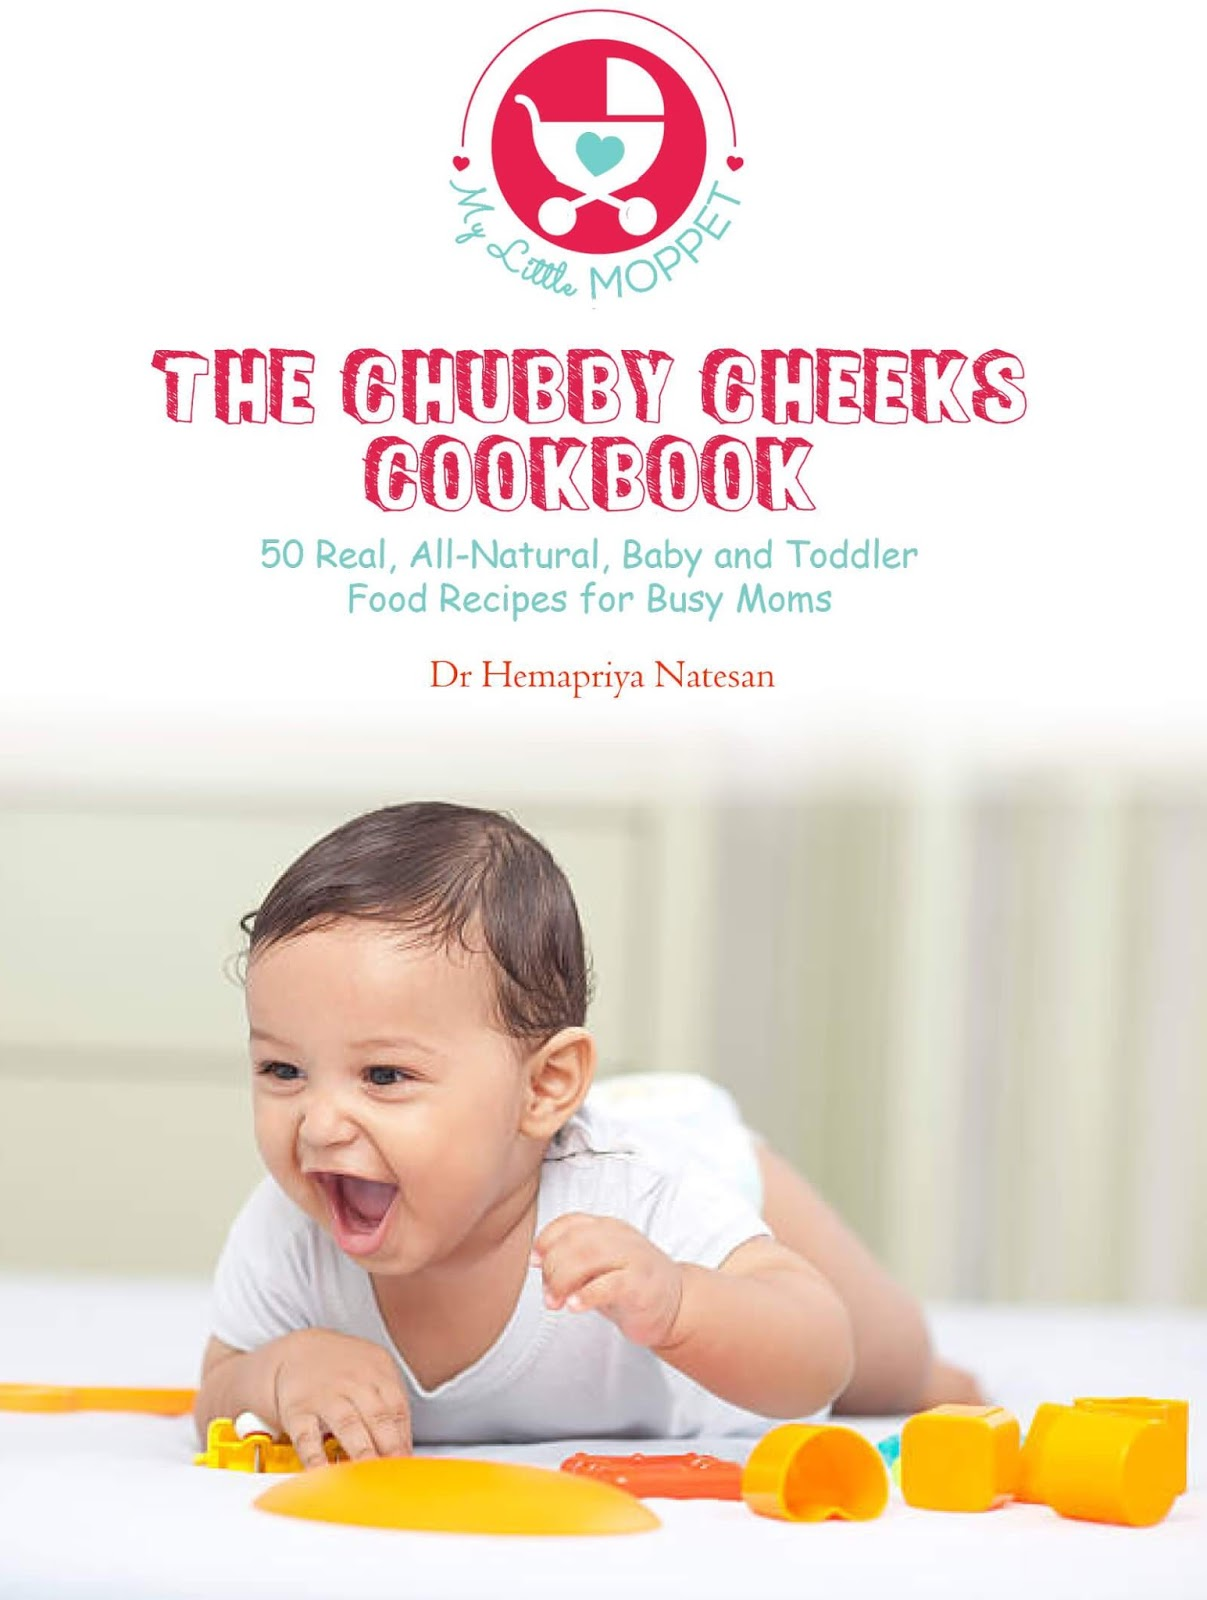 Indian food recipes indian recipes desi food desi recipes the chubby cheeks cookbook is a guide to educate families on nutrition and making food especially for their babies and toddlers forumfinder Choice Image